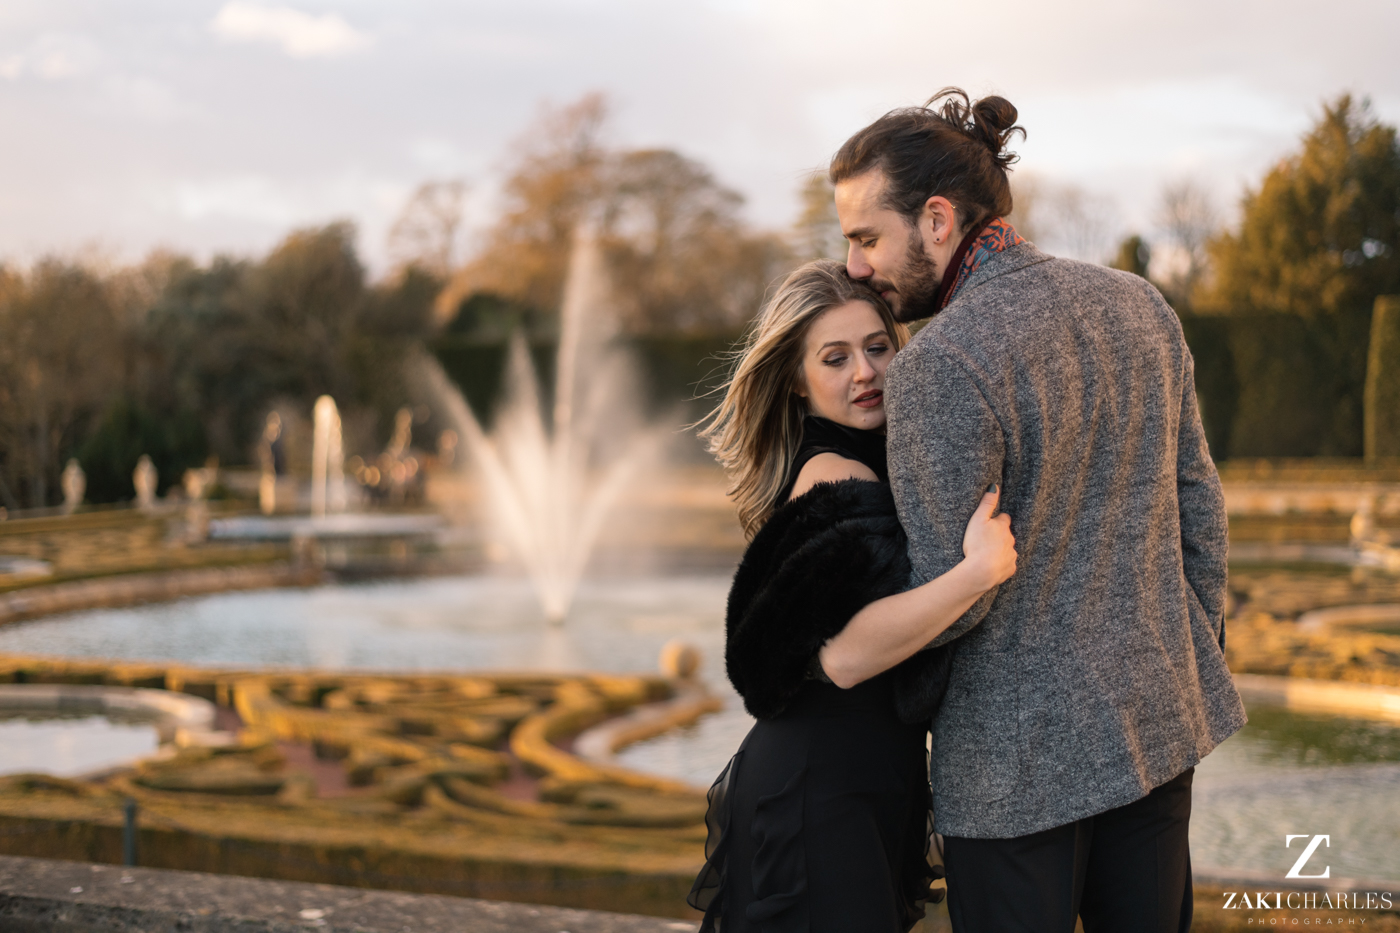 Blenheim Palace Engagement Session, AJ & Yannis, photography 2